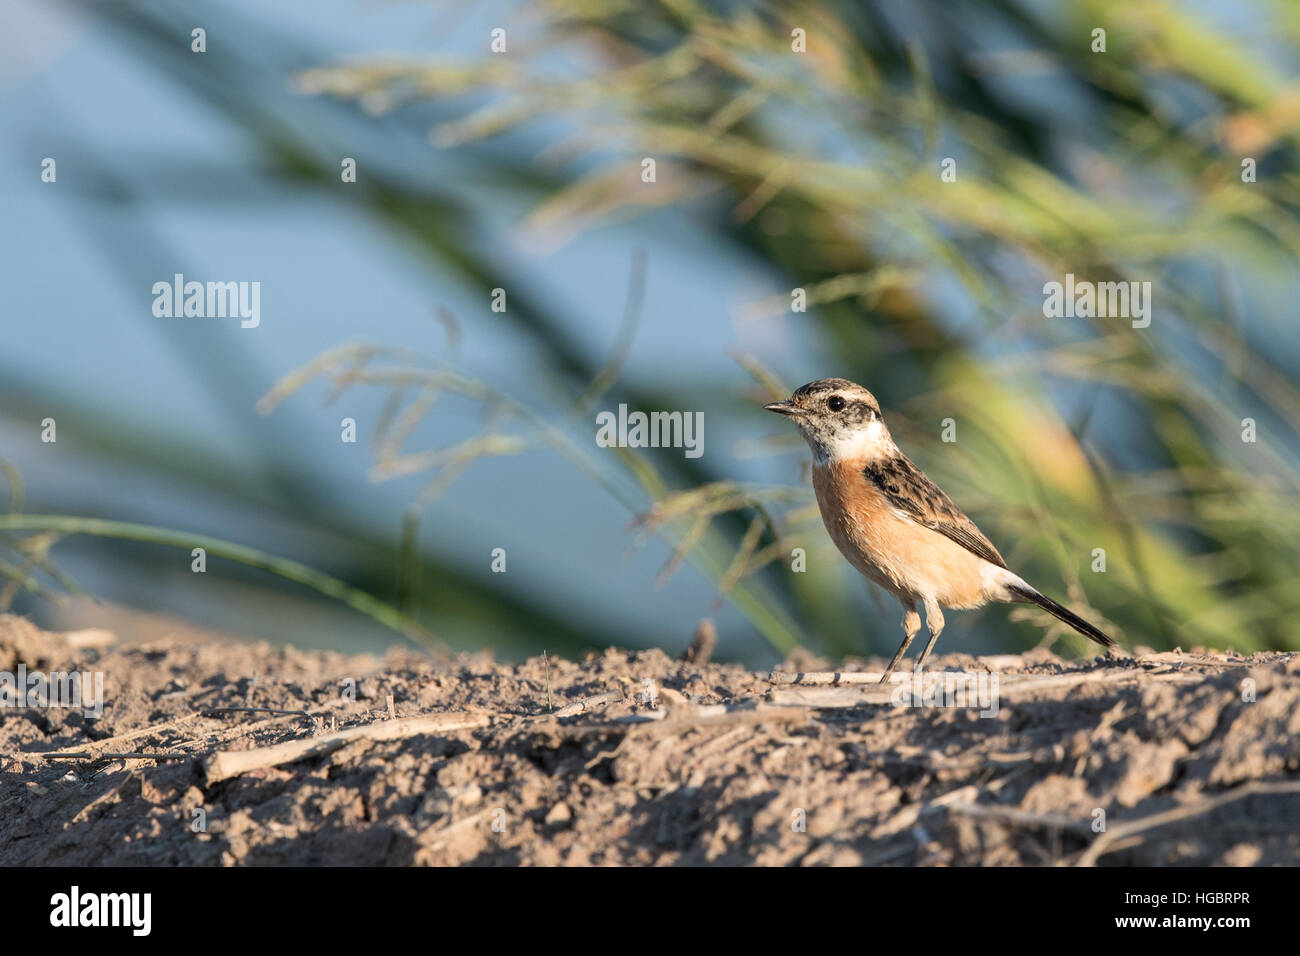 The Siberian stonechat or Asian stonechat (Saxicola maurus) is a recently validated species of the Old World flycatcher Stock Photo